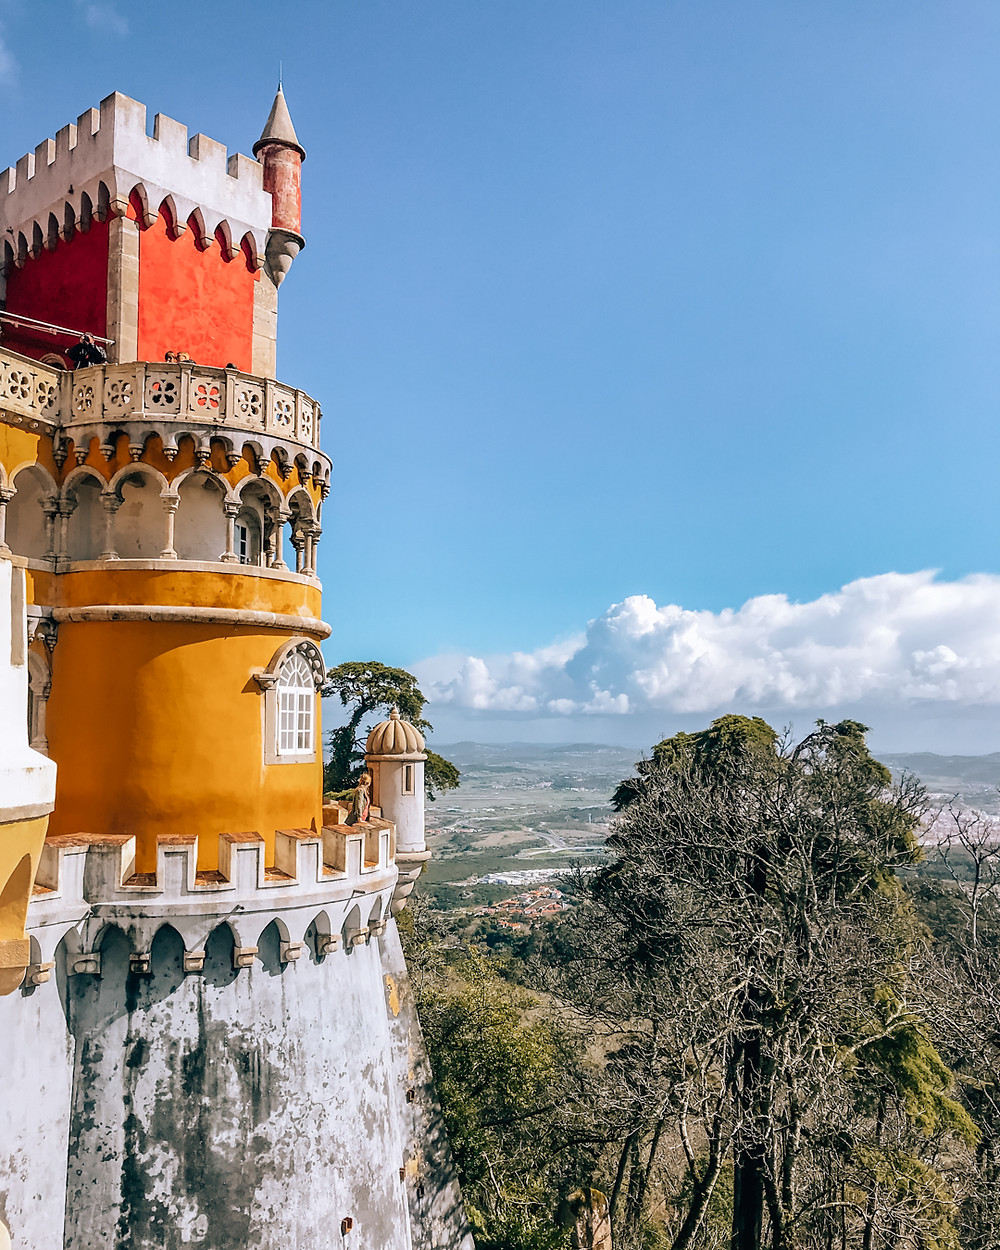 Pena palace in Sintra Portugal lisbon